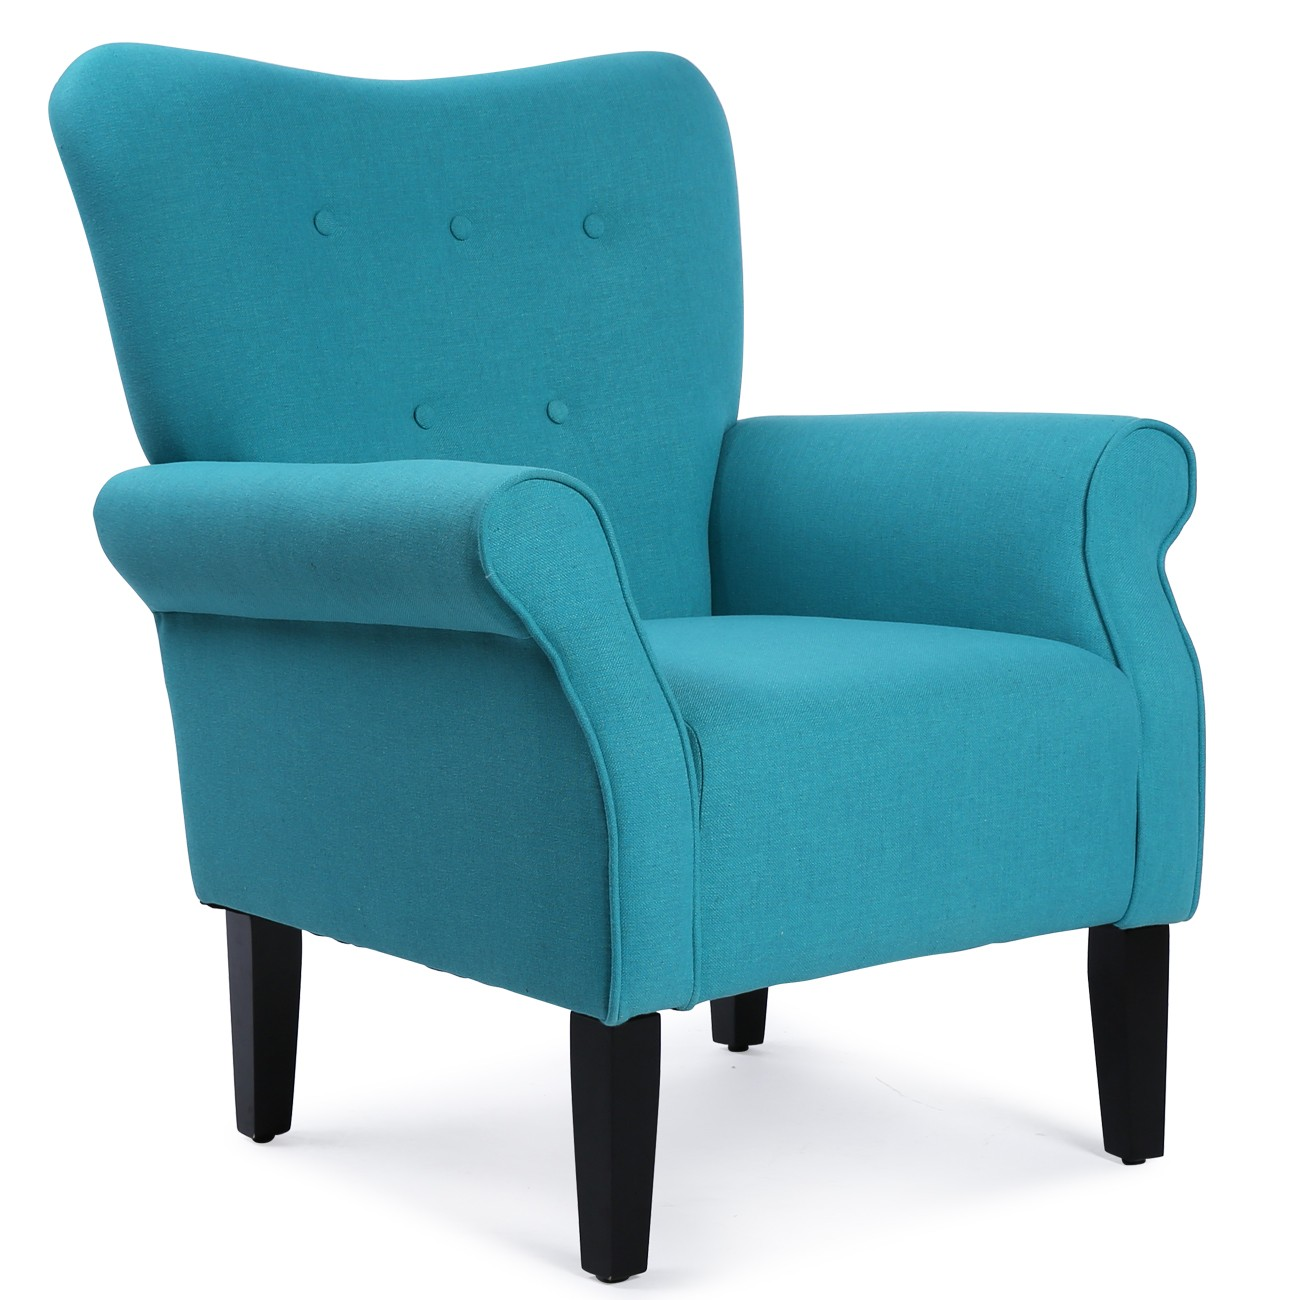 Wooden Arm Chairs In Teal ~ Elegant design fabric club chair w button accent arm rest